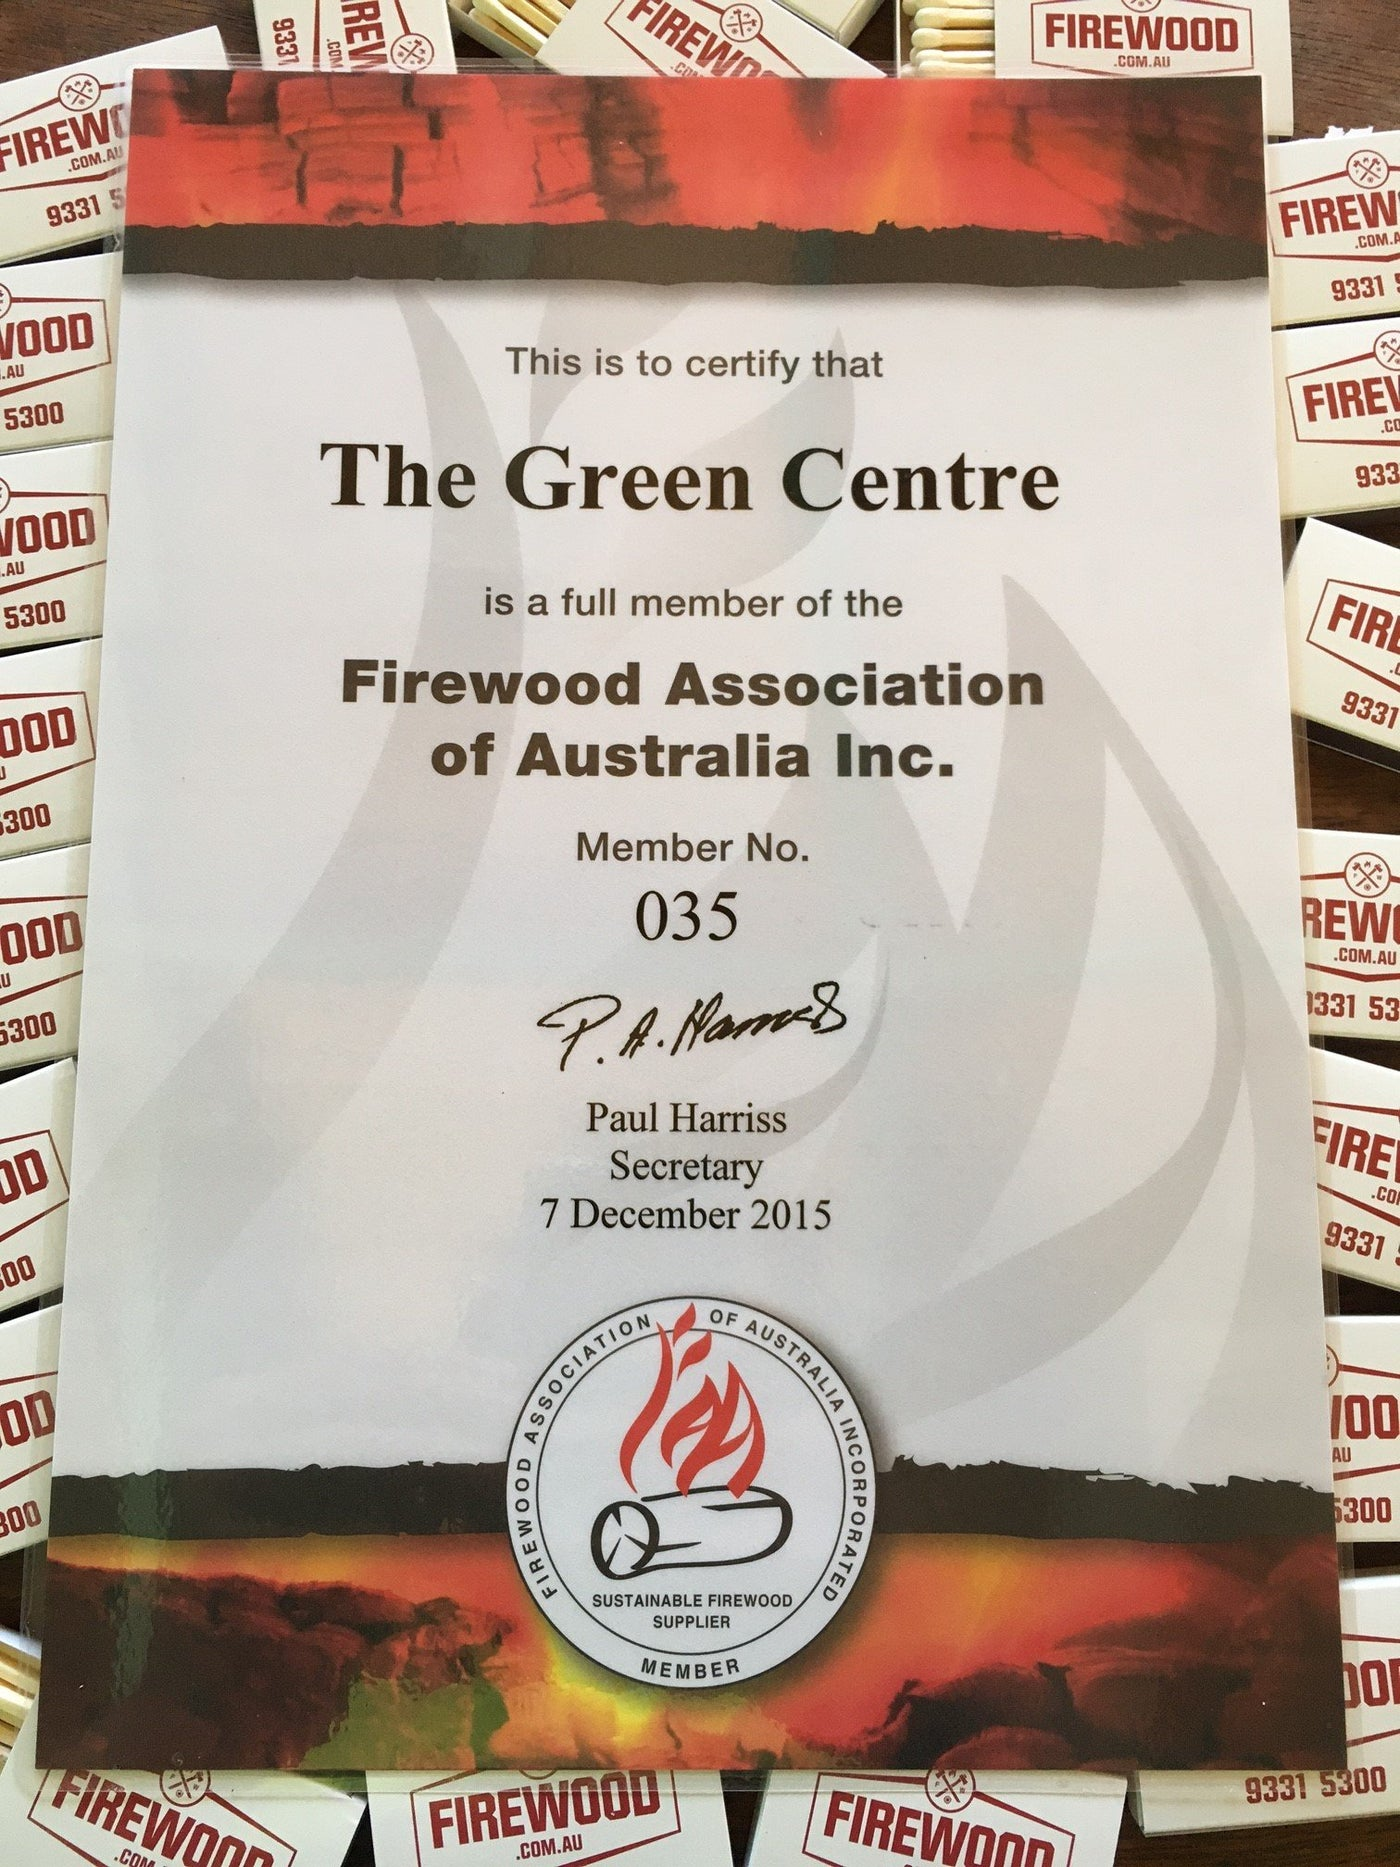 Firewood Association of Australia Inc